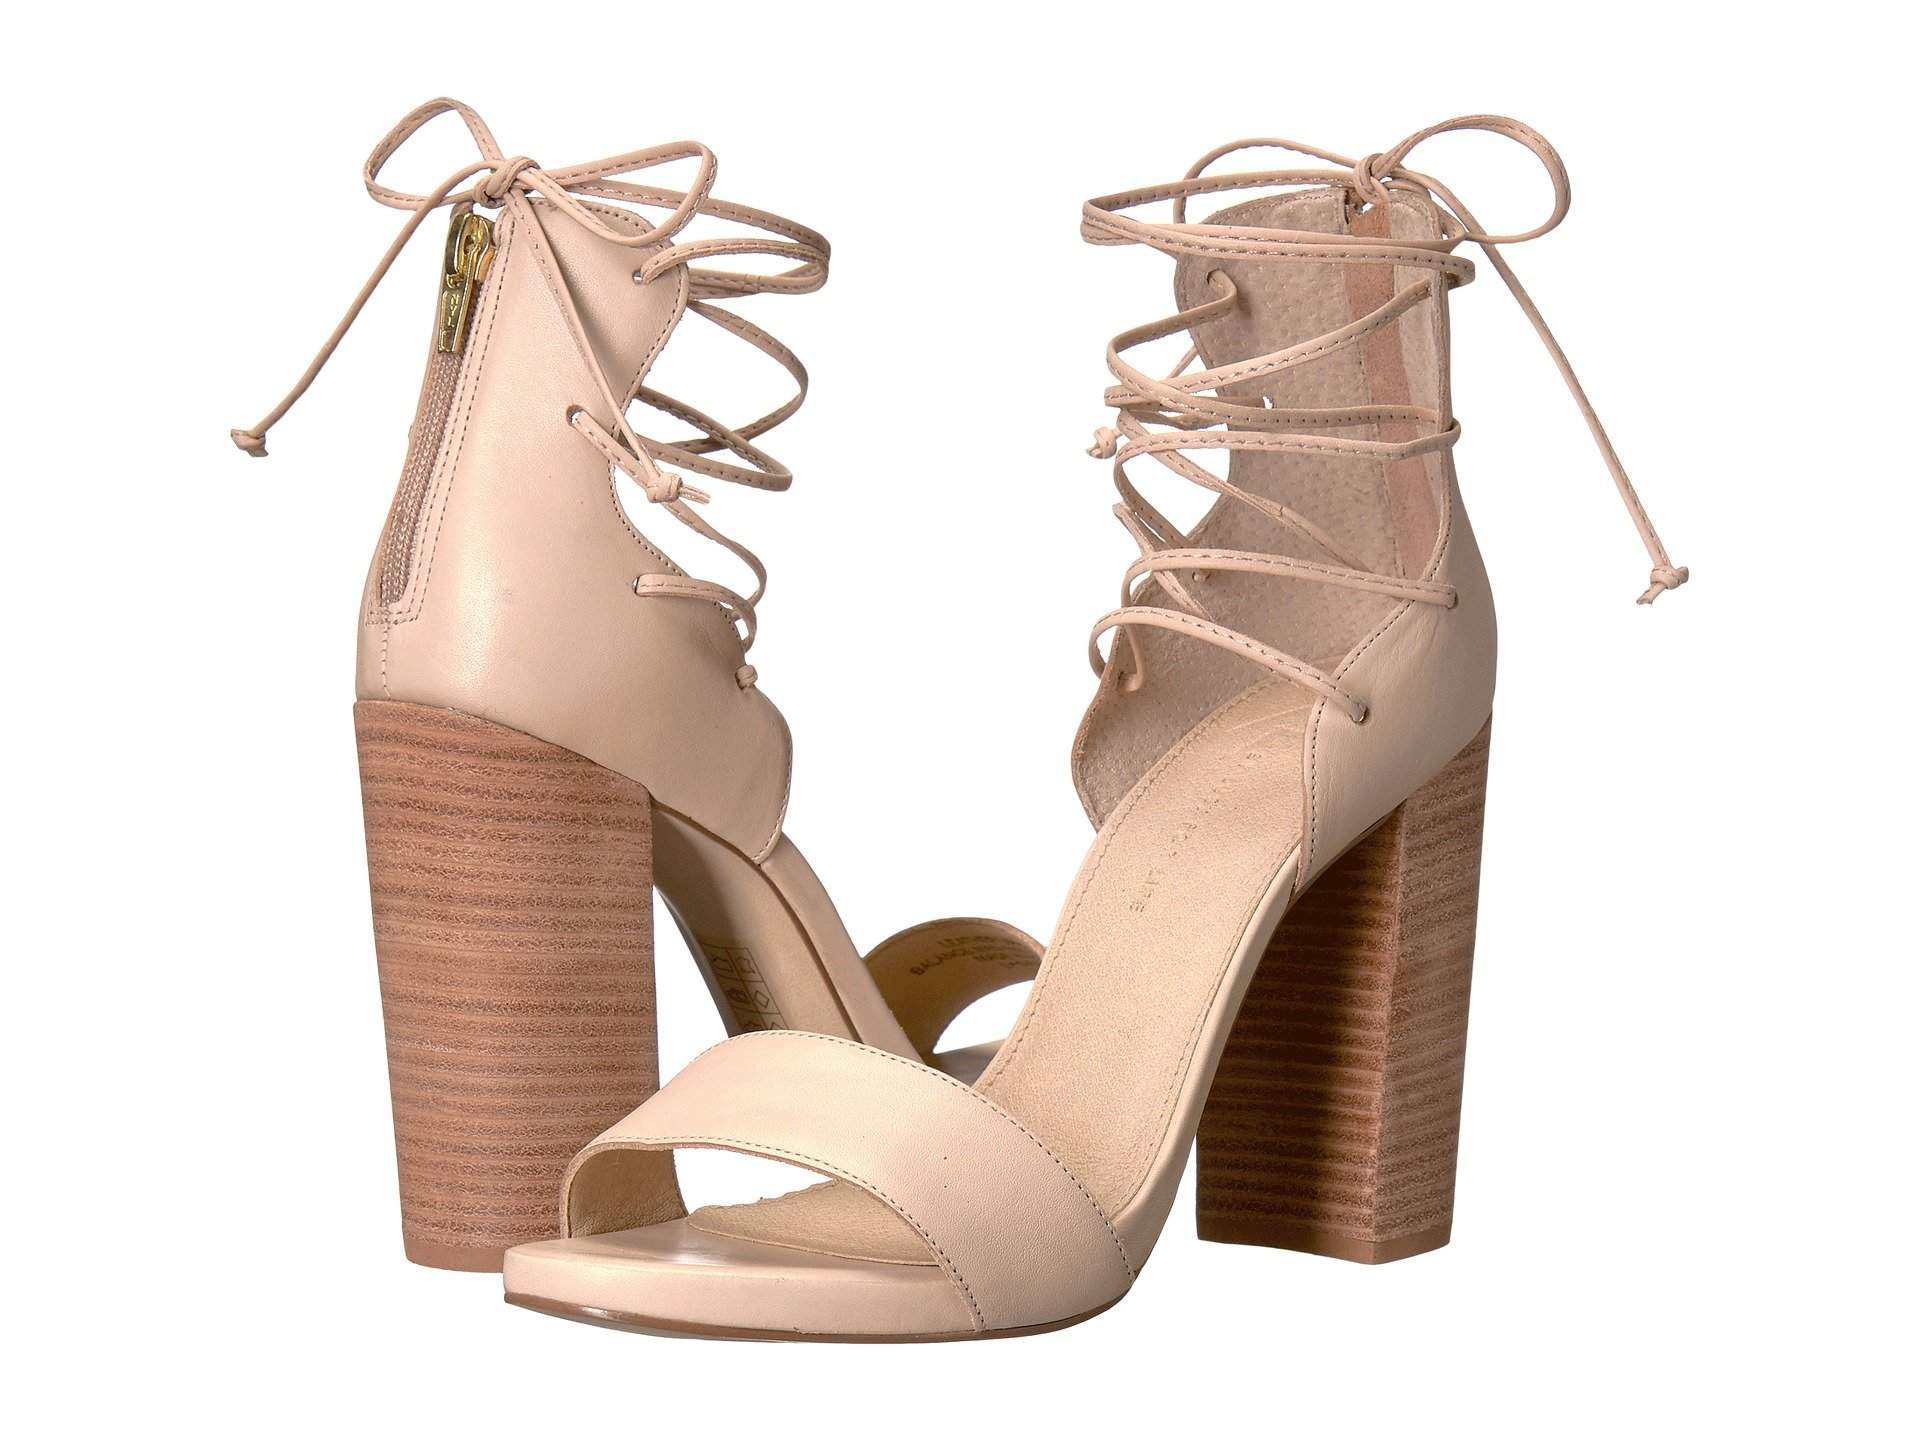 LFL BY LUST FOR LIFE Gaze, Nude Leather